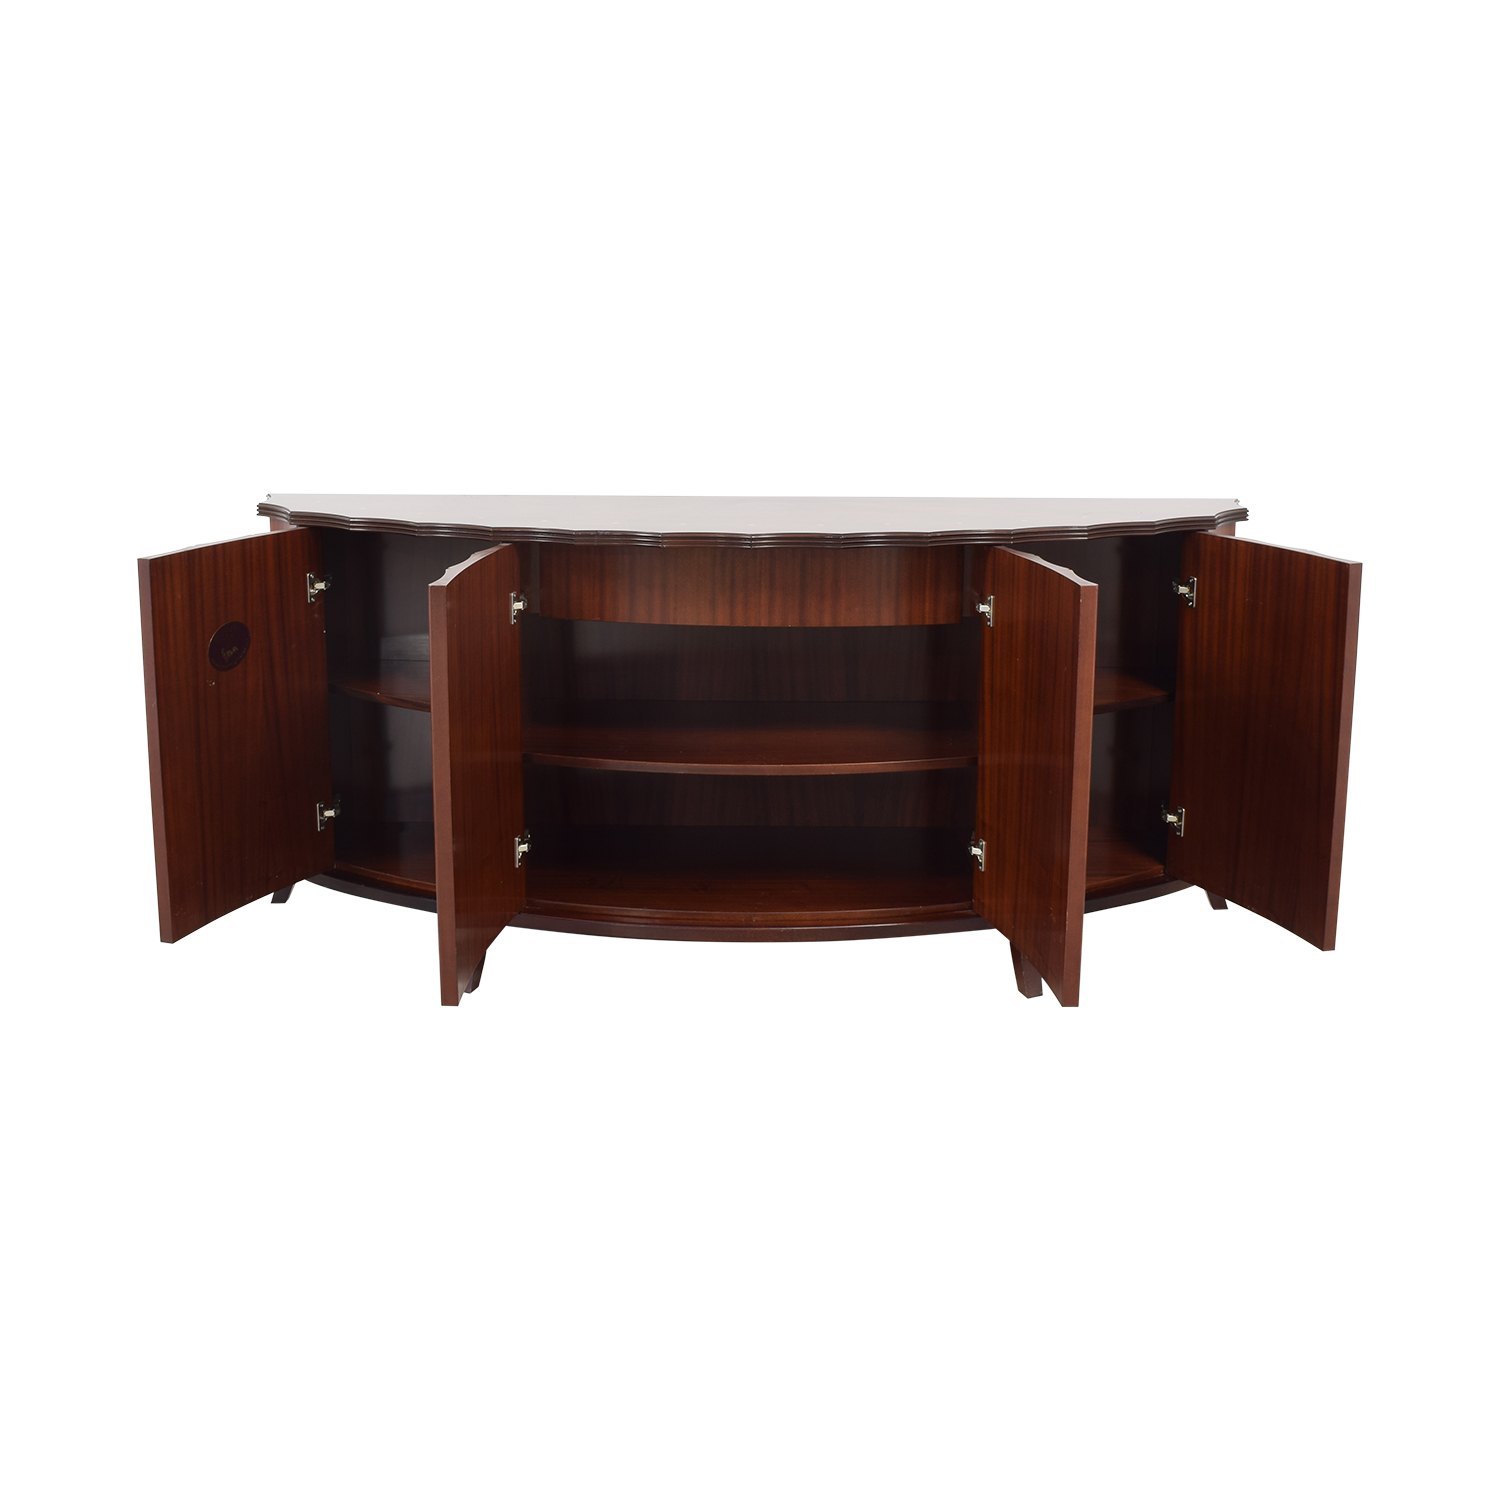 Four Door Cabinet Sideboard ma